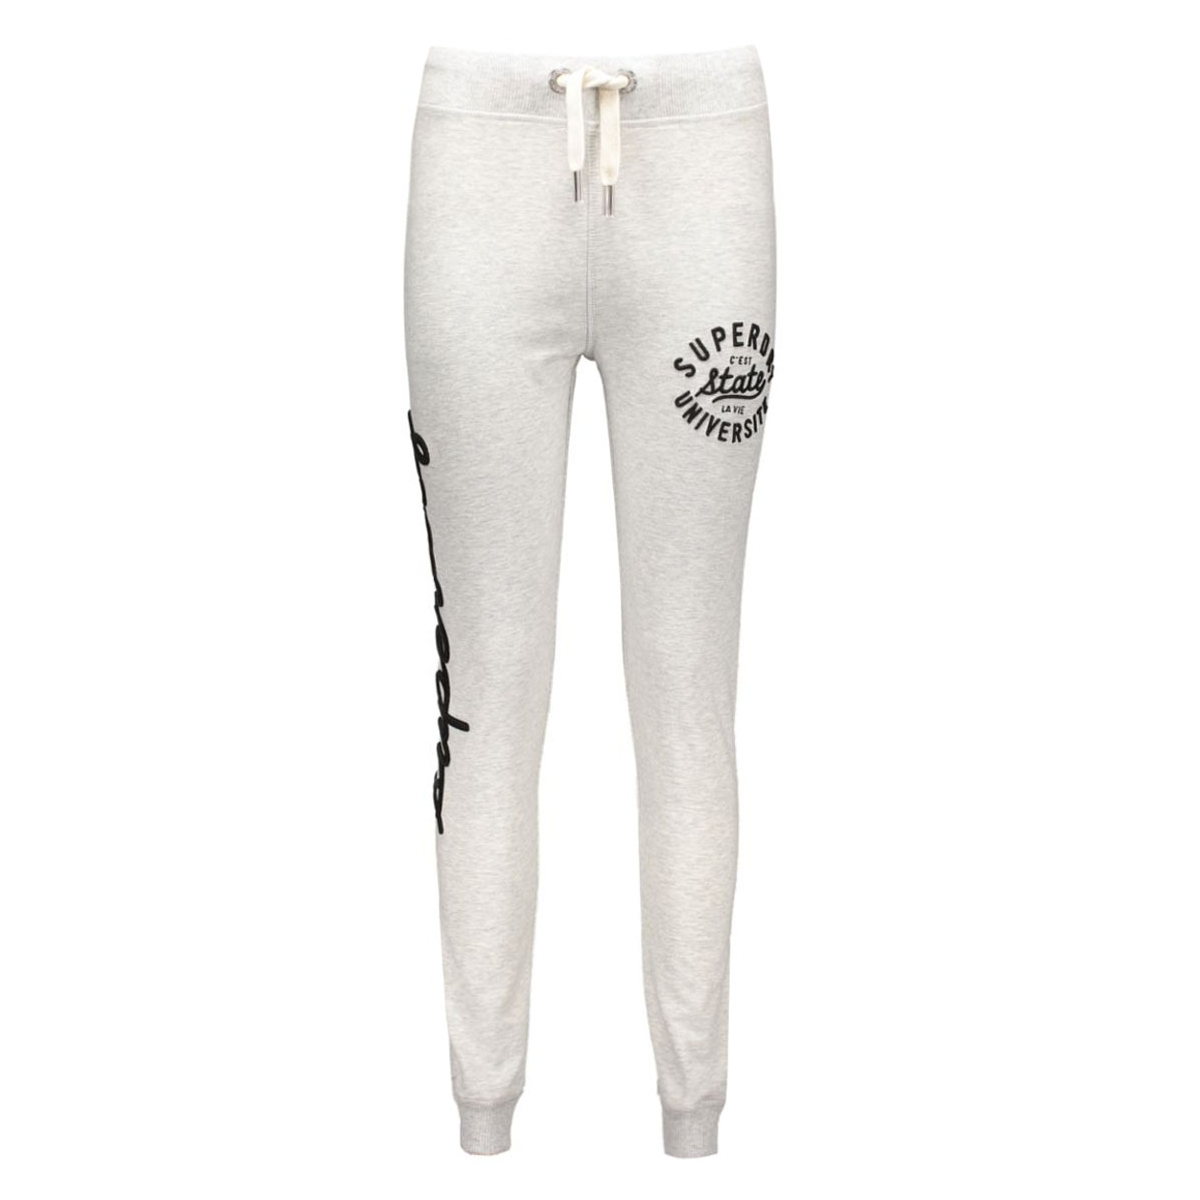 g70000pn applique jogger superdry broek 54g ice marl